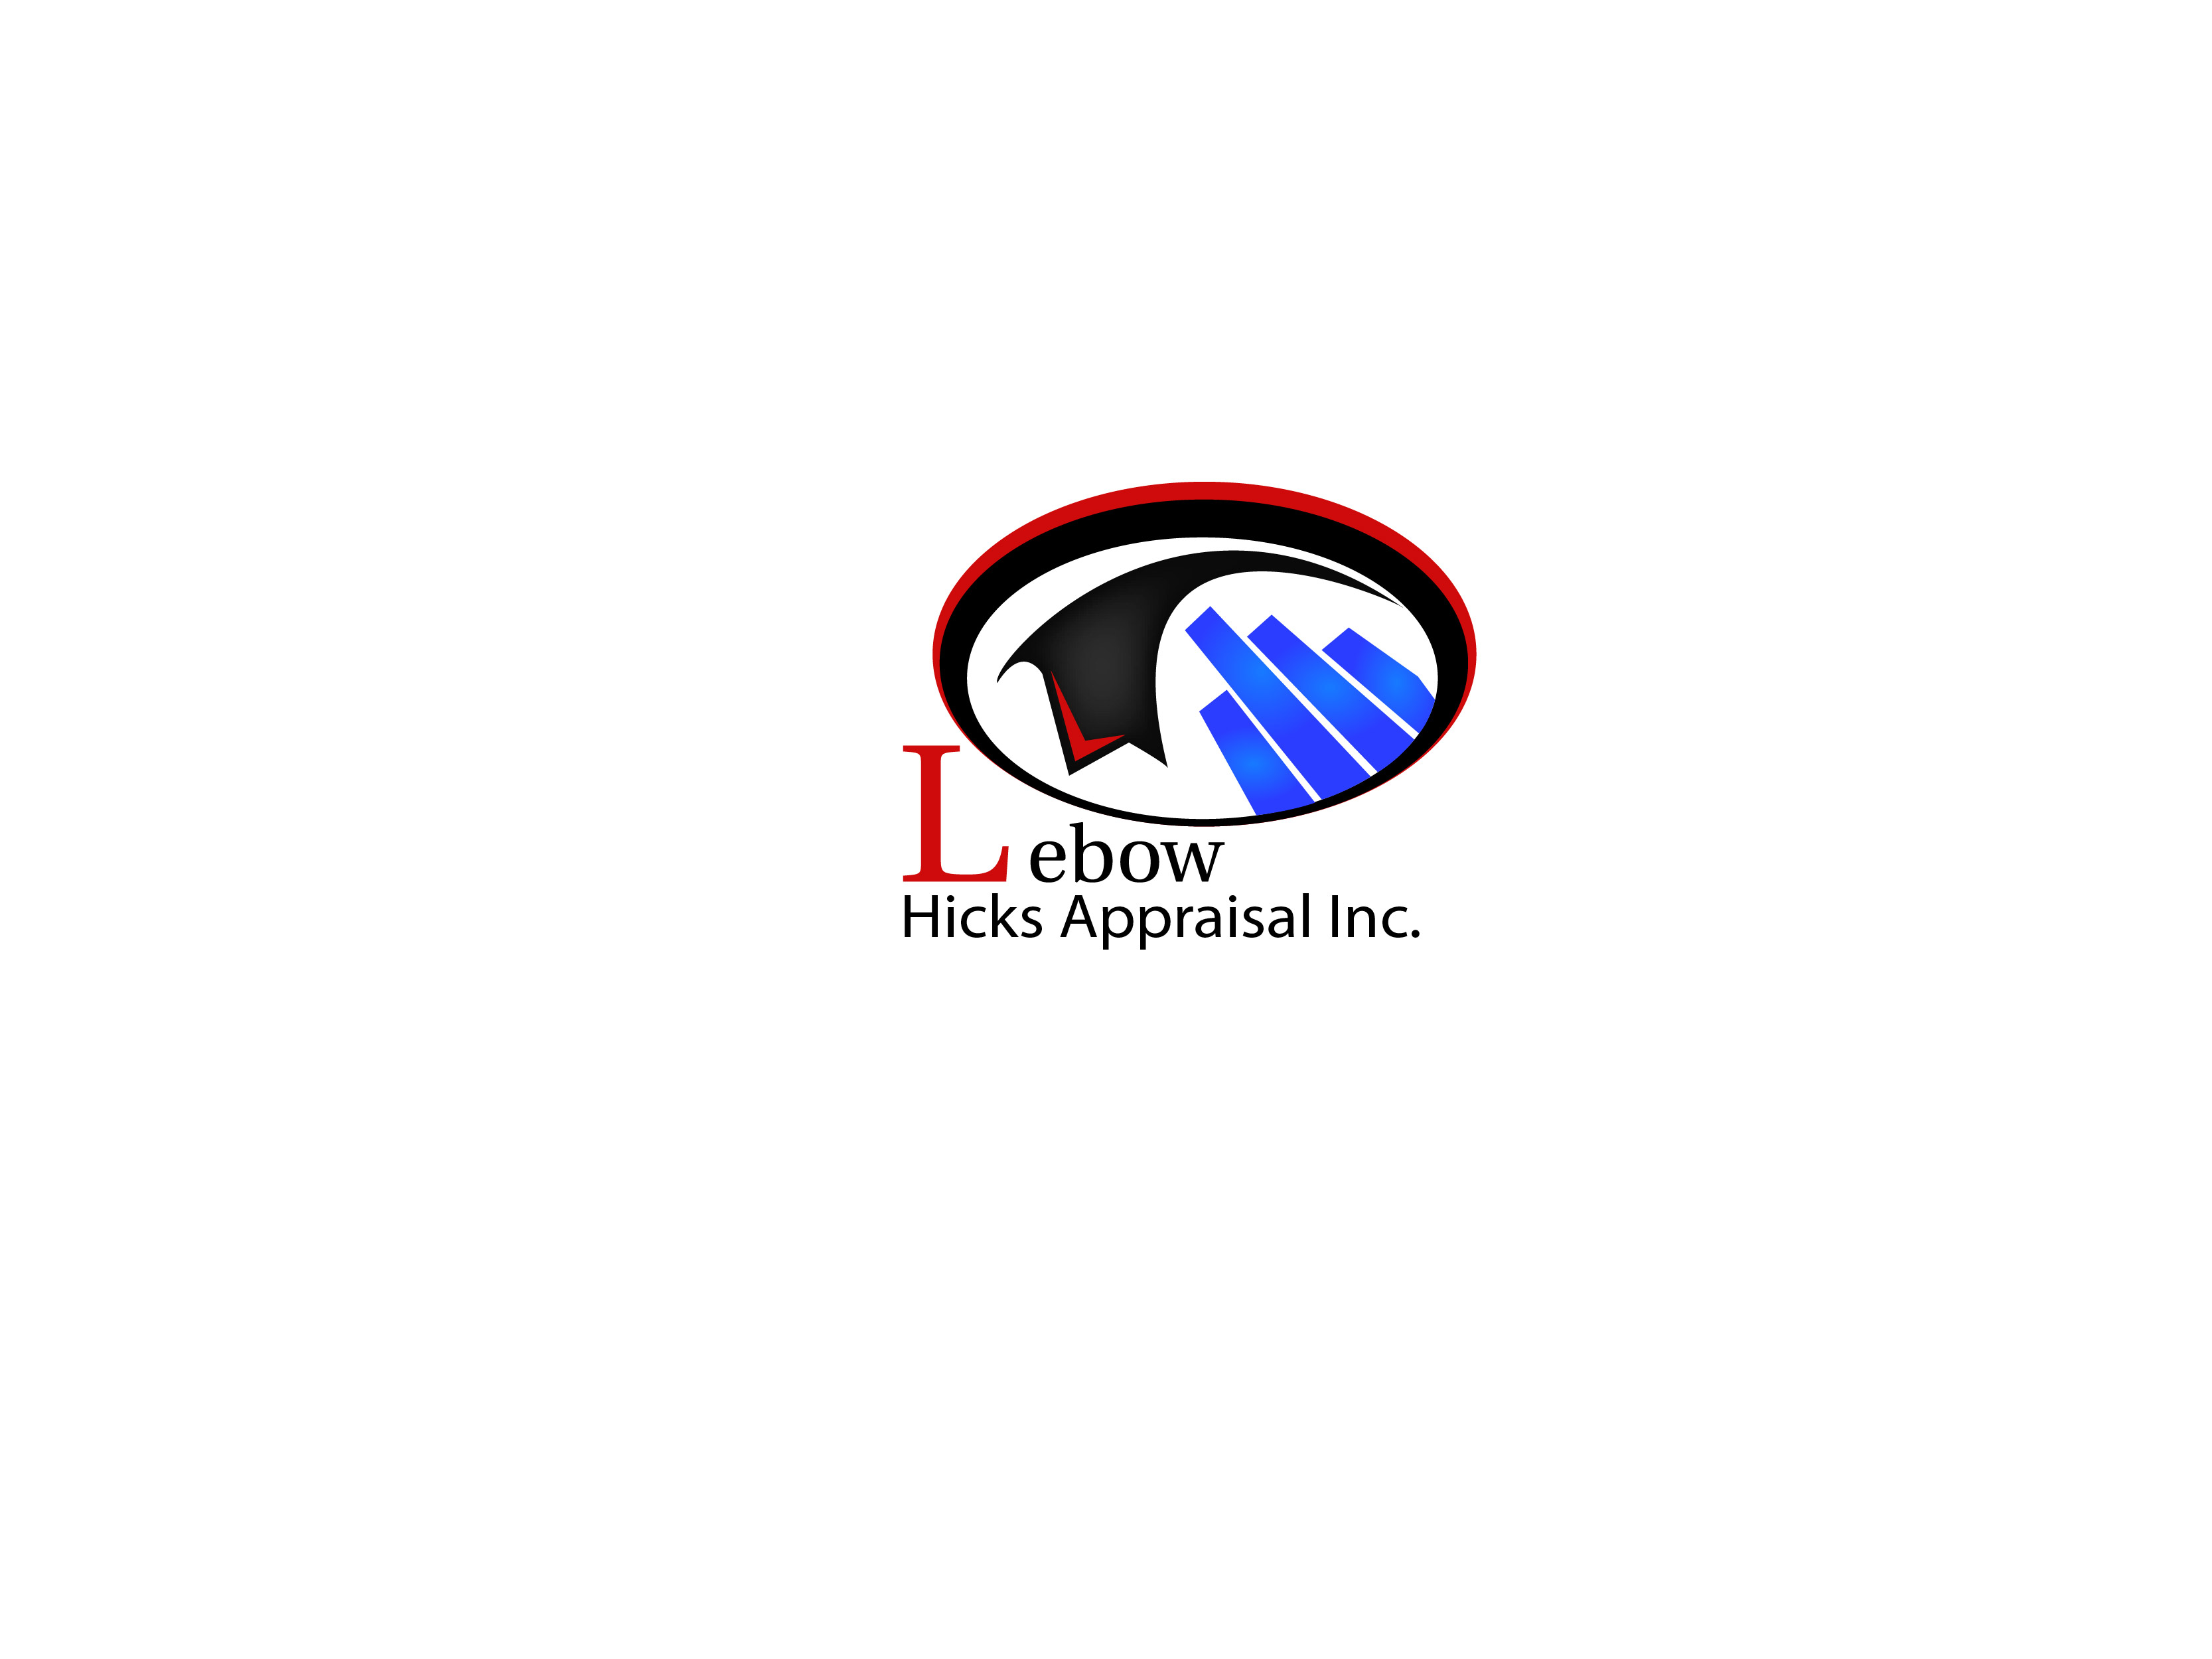 Logo Design by Kishor Patil - Entry No. 47 in the Logo Design Contest Fun Logo Design for Lebow, Hicks Appraisal Inc..